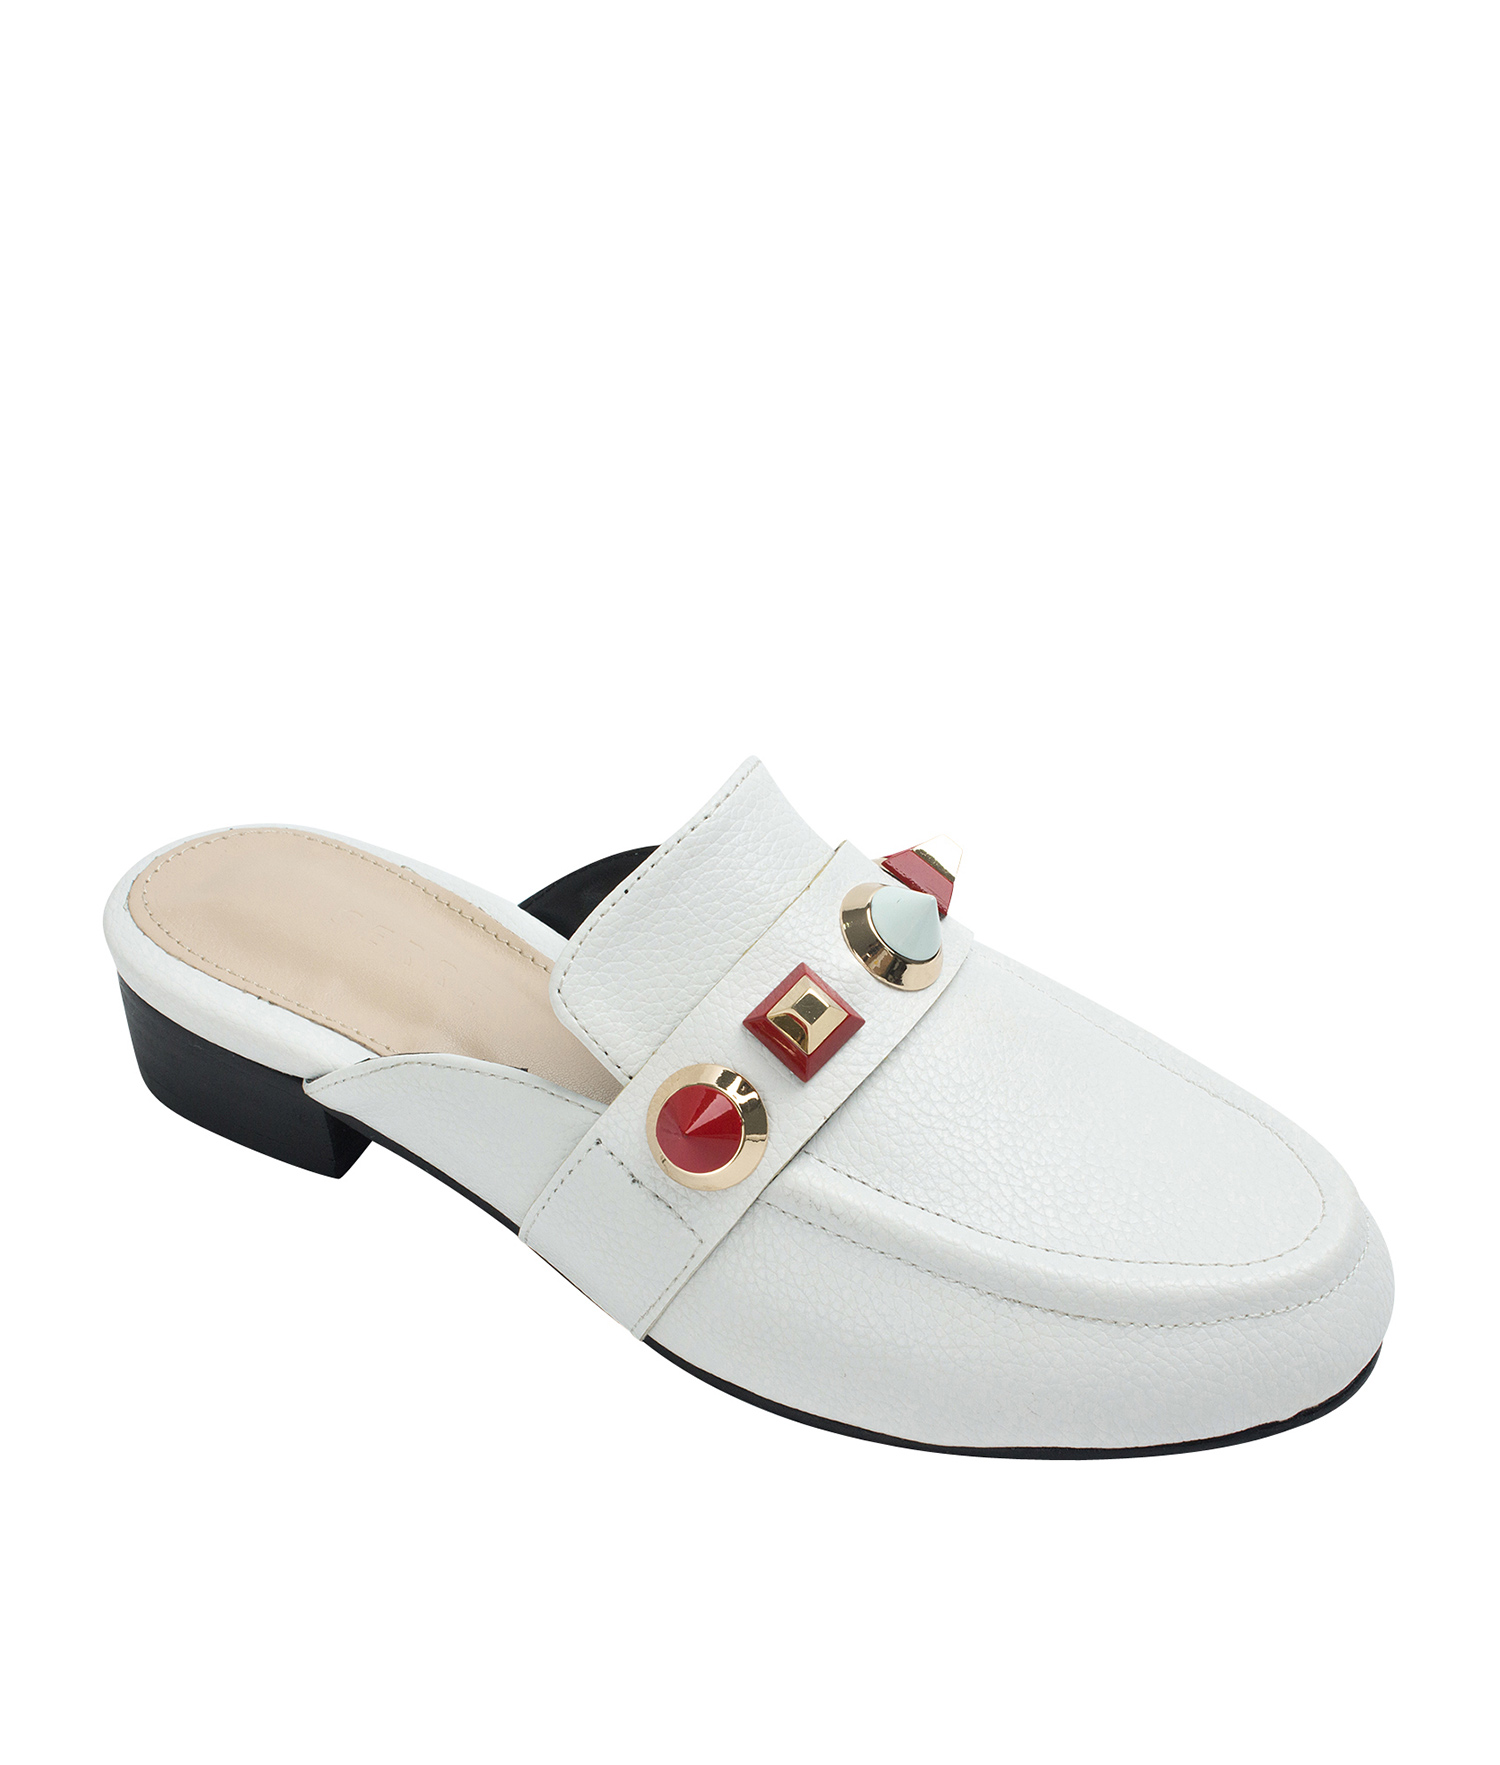 c194b720f8c AnnaKastle Womens Studded Backless Loafer Mules White